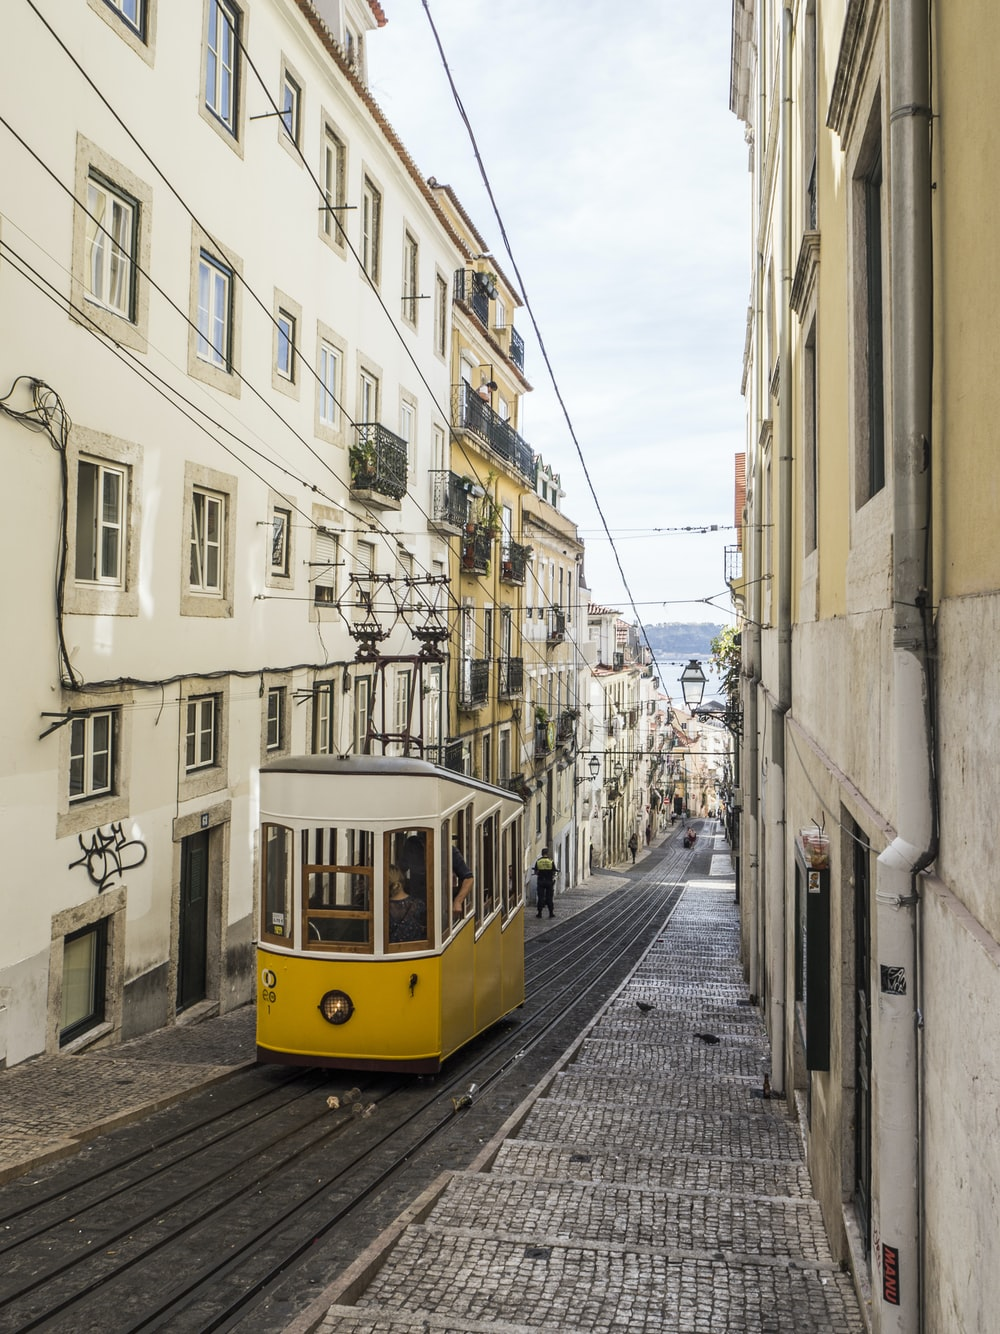 yellow and white bus in the middle of white buildings during daytime